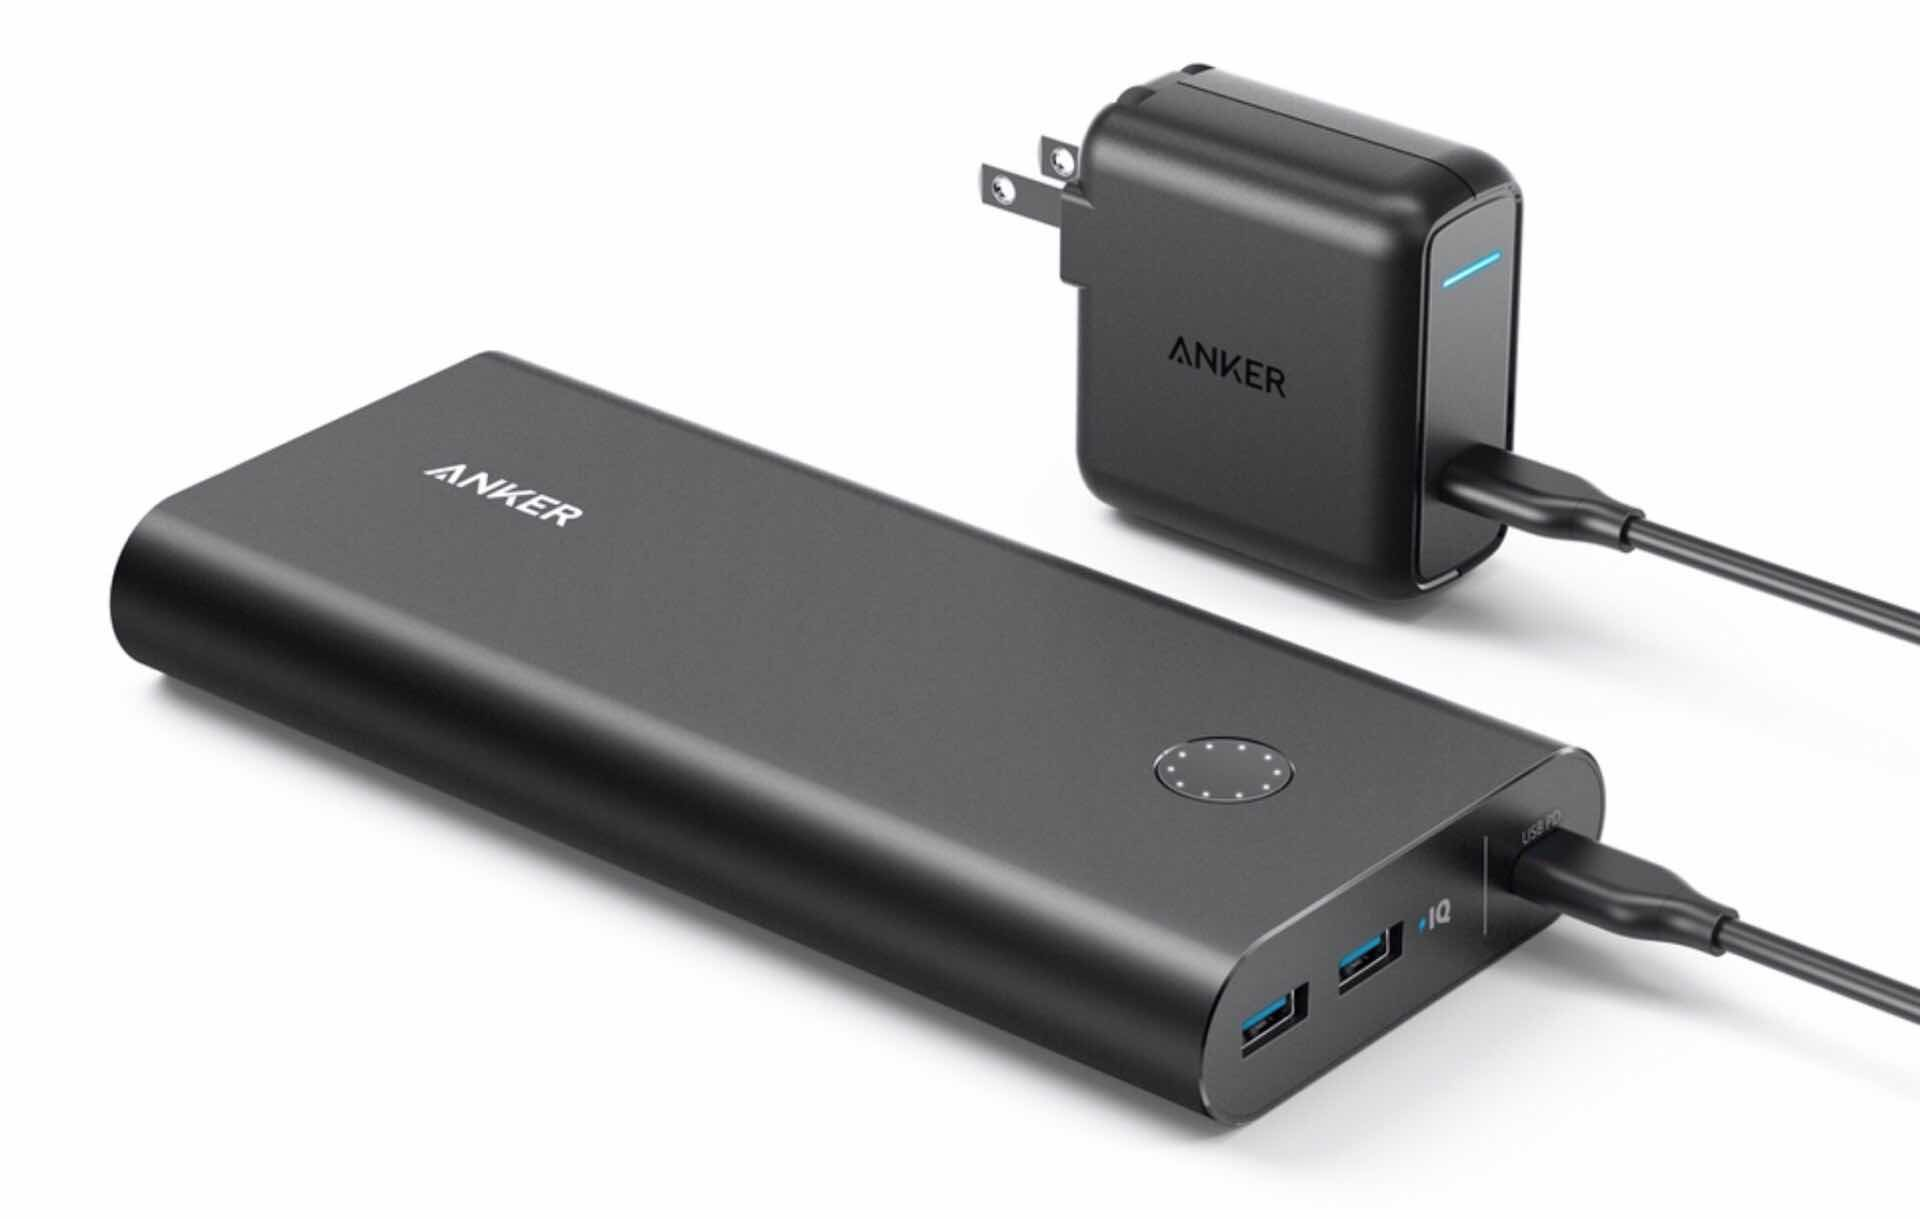 anker-powercore-plus-26800-pd-portable-charger